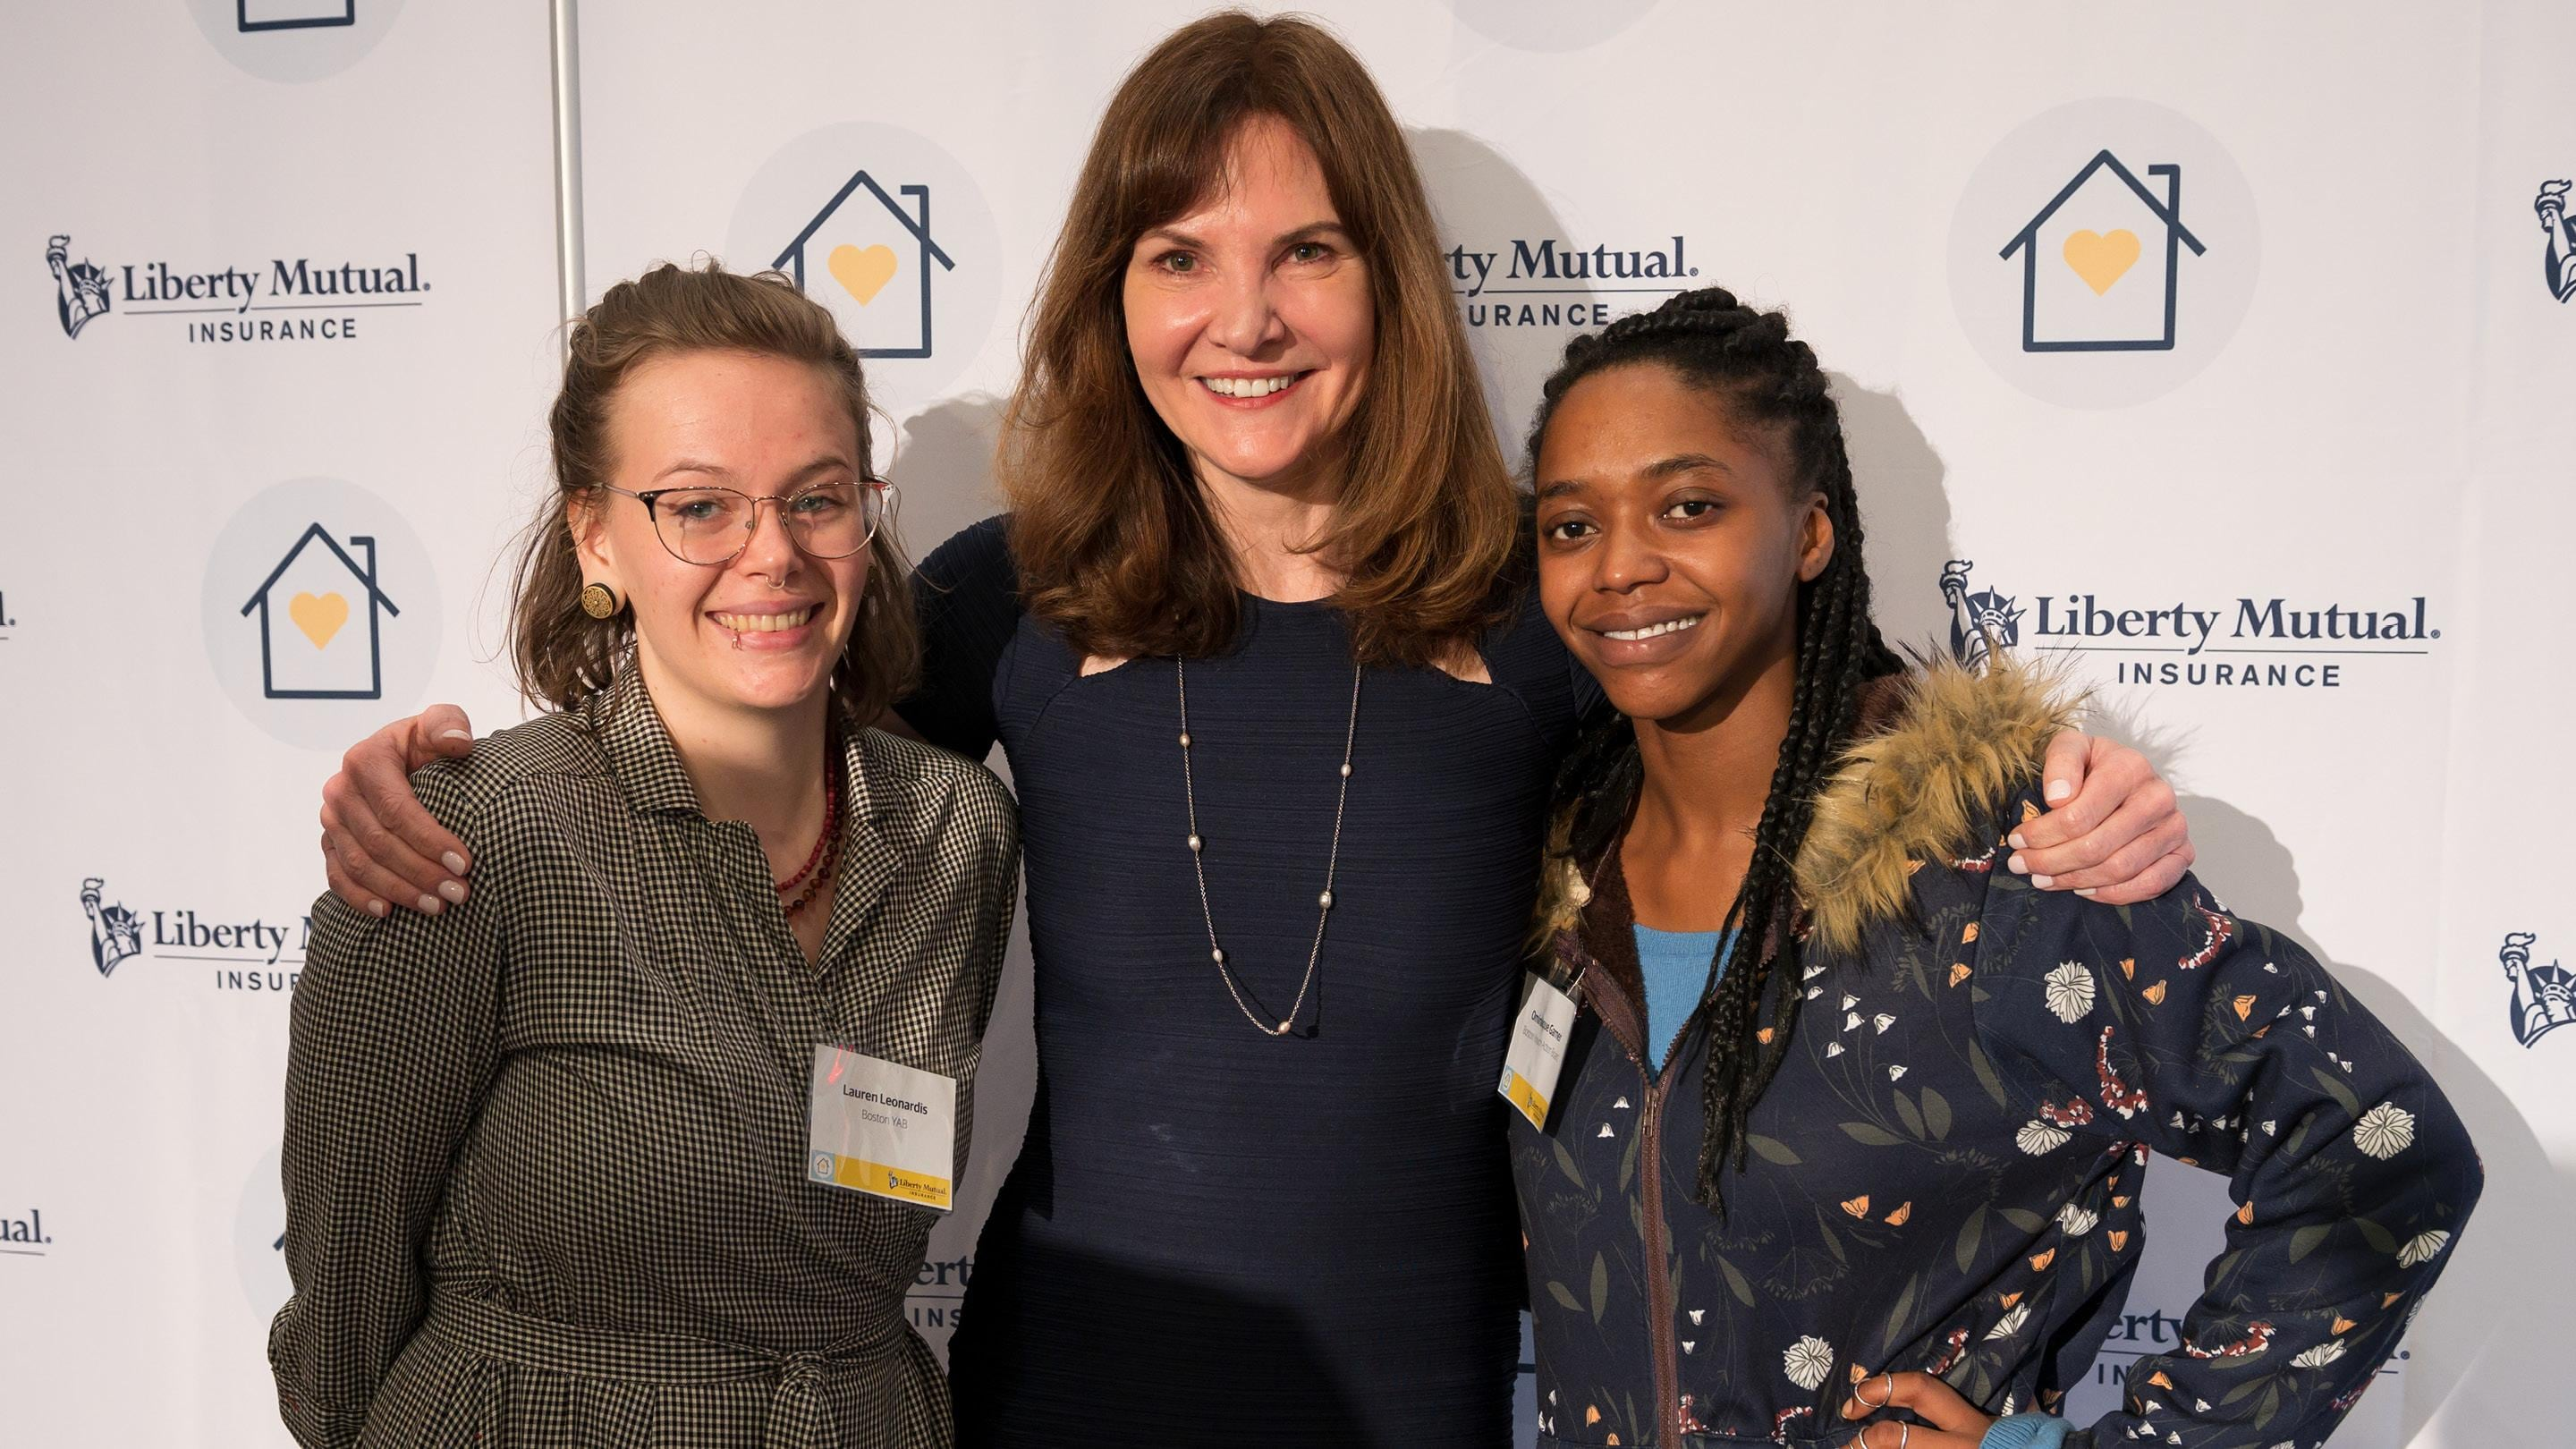 (slide 4 of 5) Image of Melissa with Lauren Leonardis and Ominique Garner both members of Boston Youth Action Board..